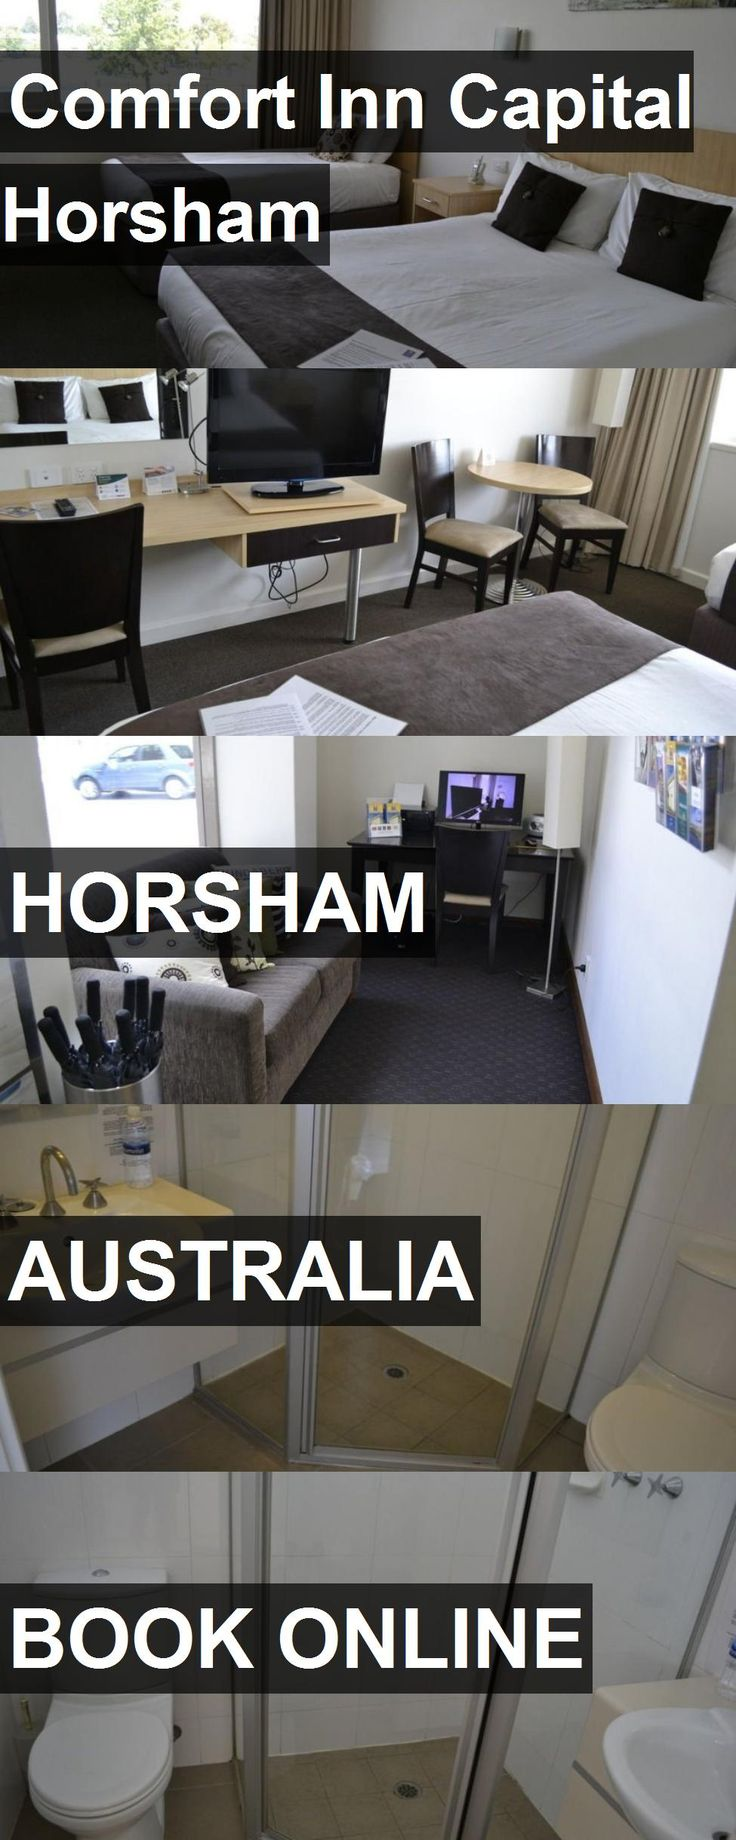 Hotel Comfort Inn Capital Horsham in Horsham, Australia. For more information, photos, reviews and best prices please follow the link. #Australia #Horsham #ComfortInnCapitalHorsham #hotel #travel #vacation